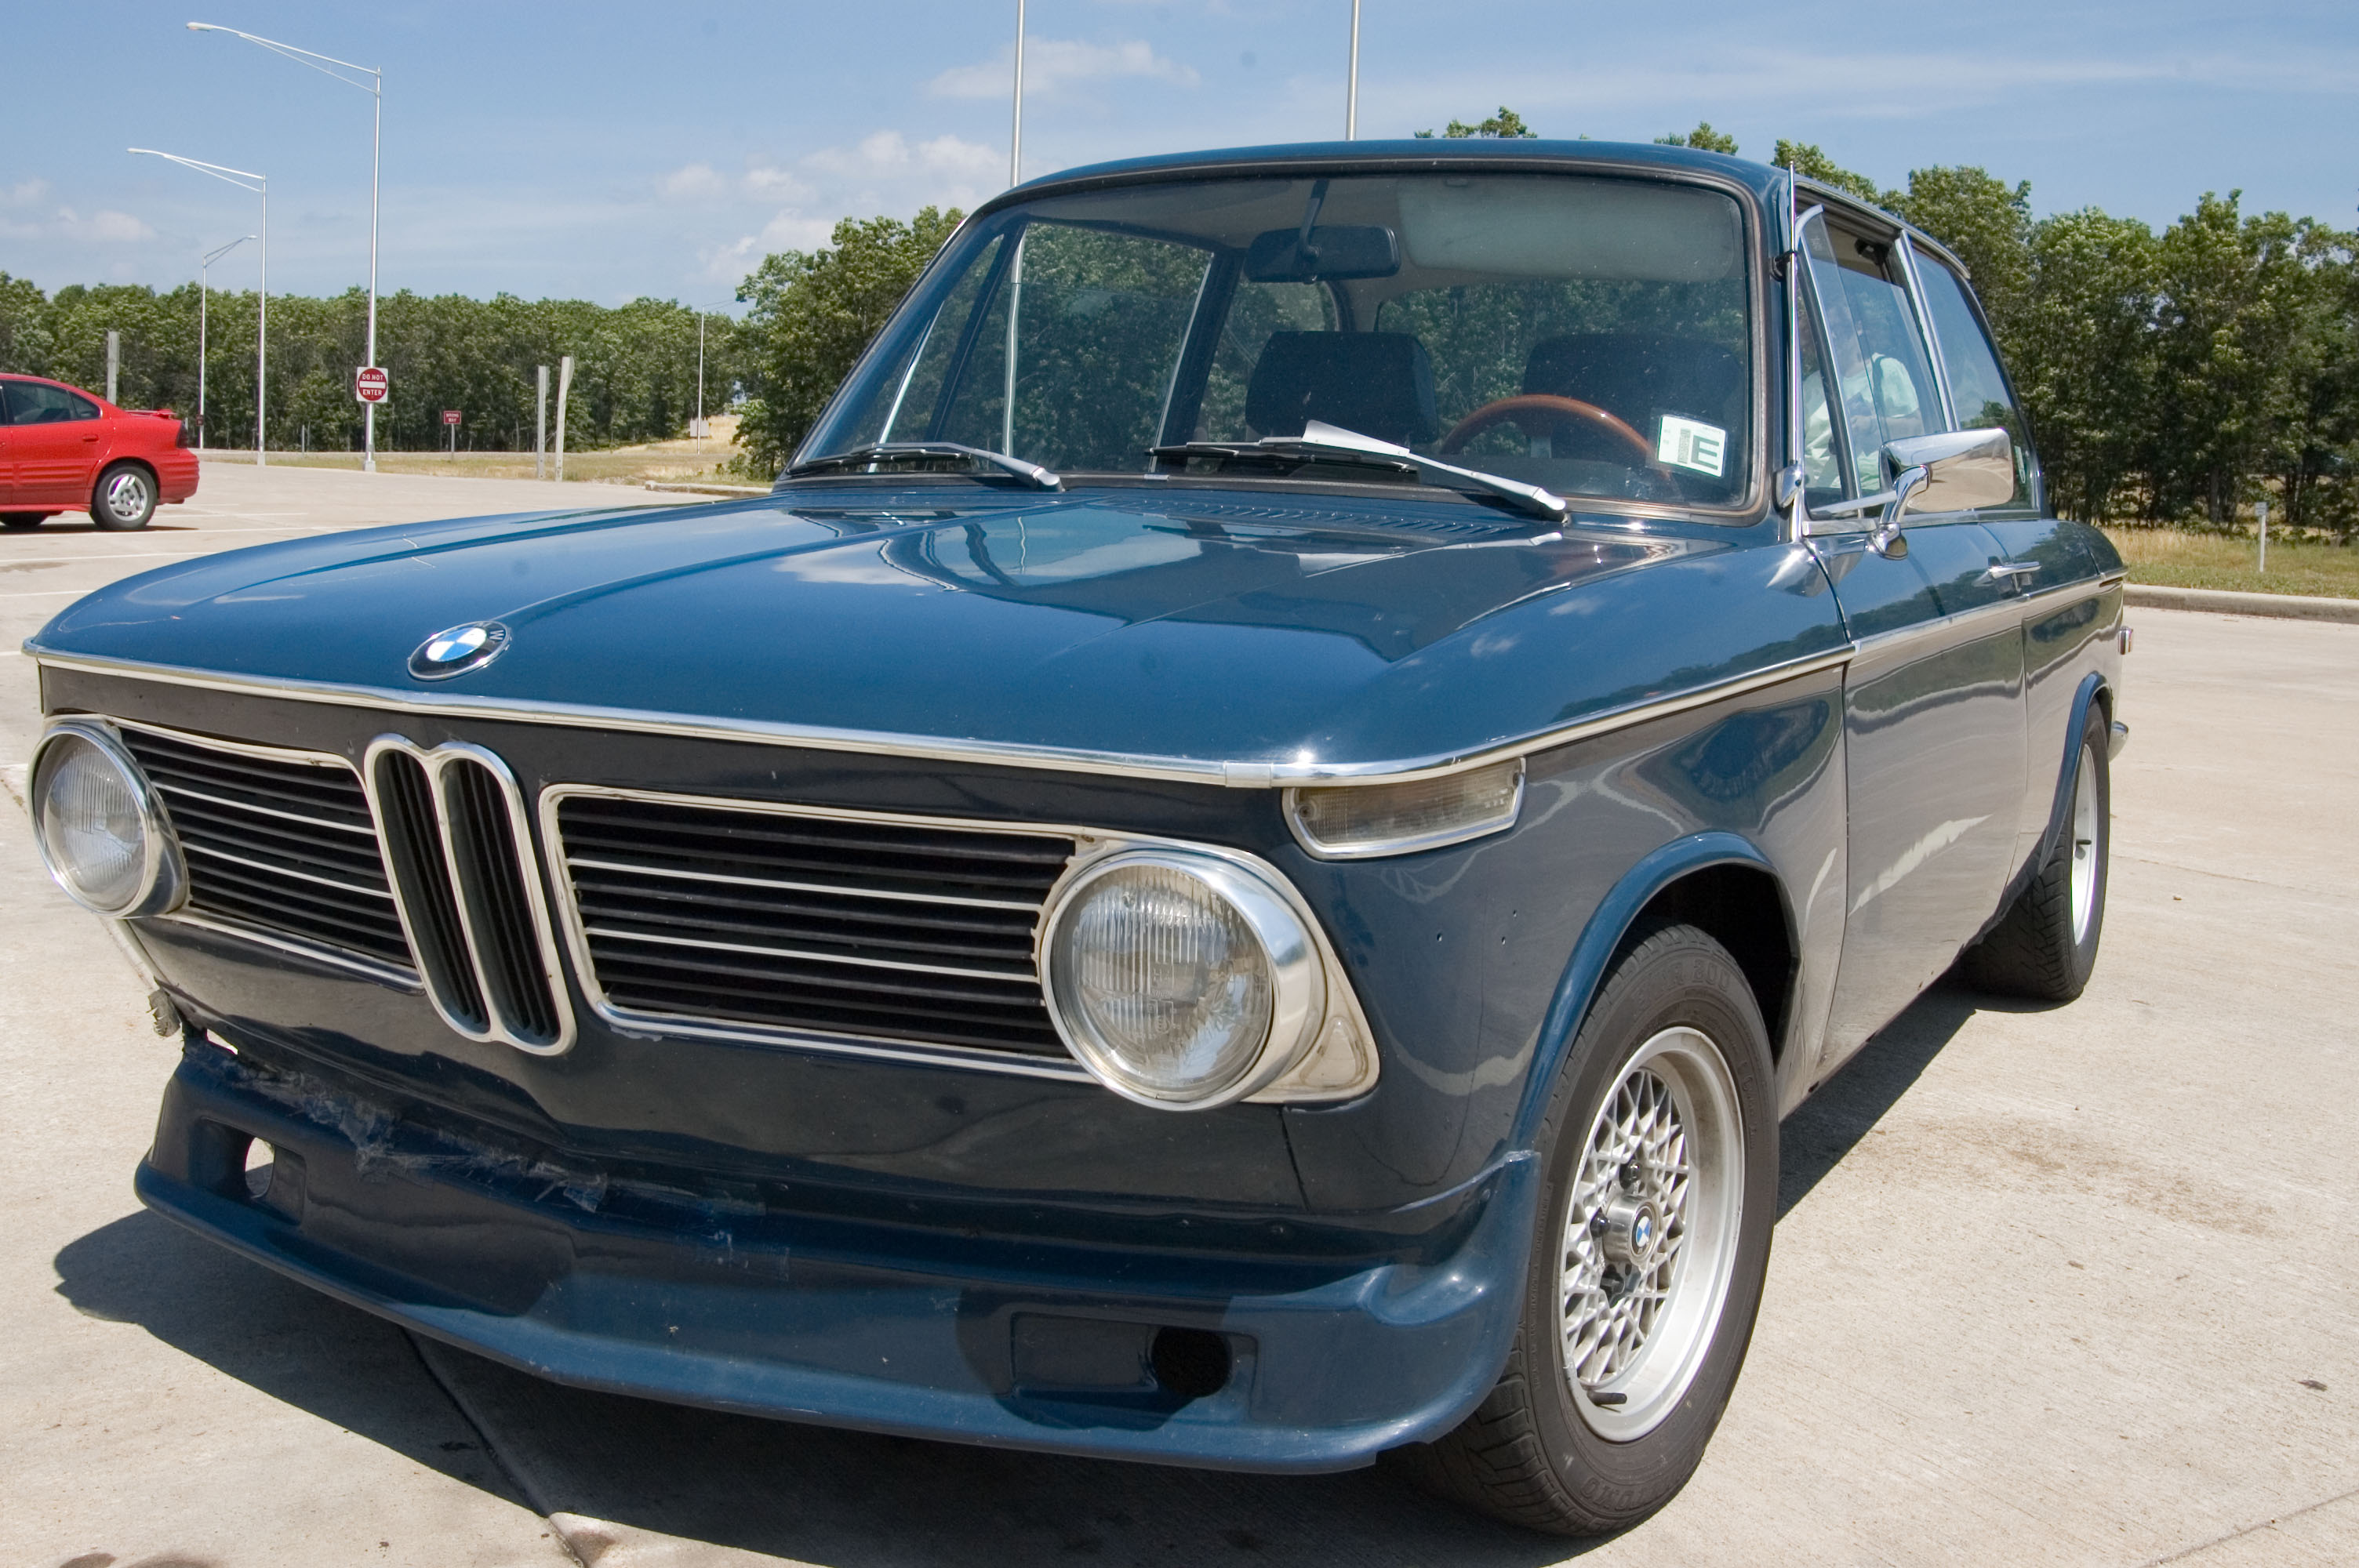 1970 Bmw 2002 Images Pictures And Videos